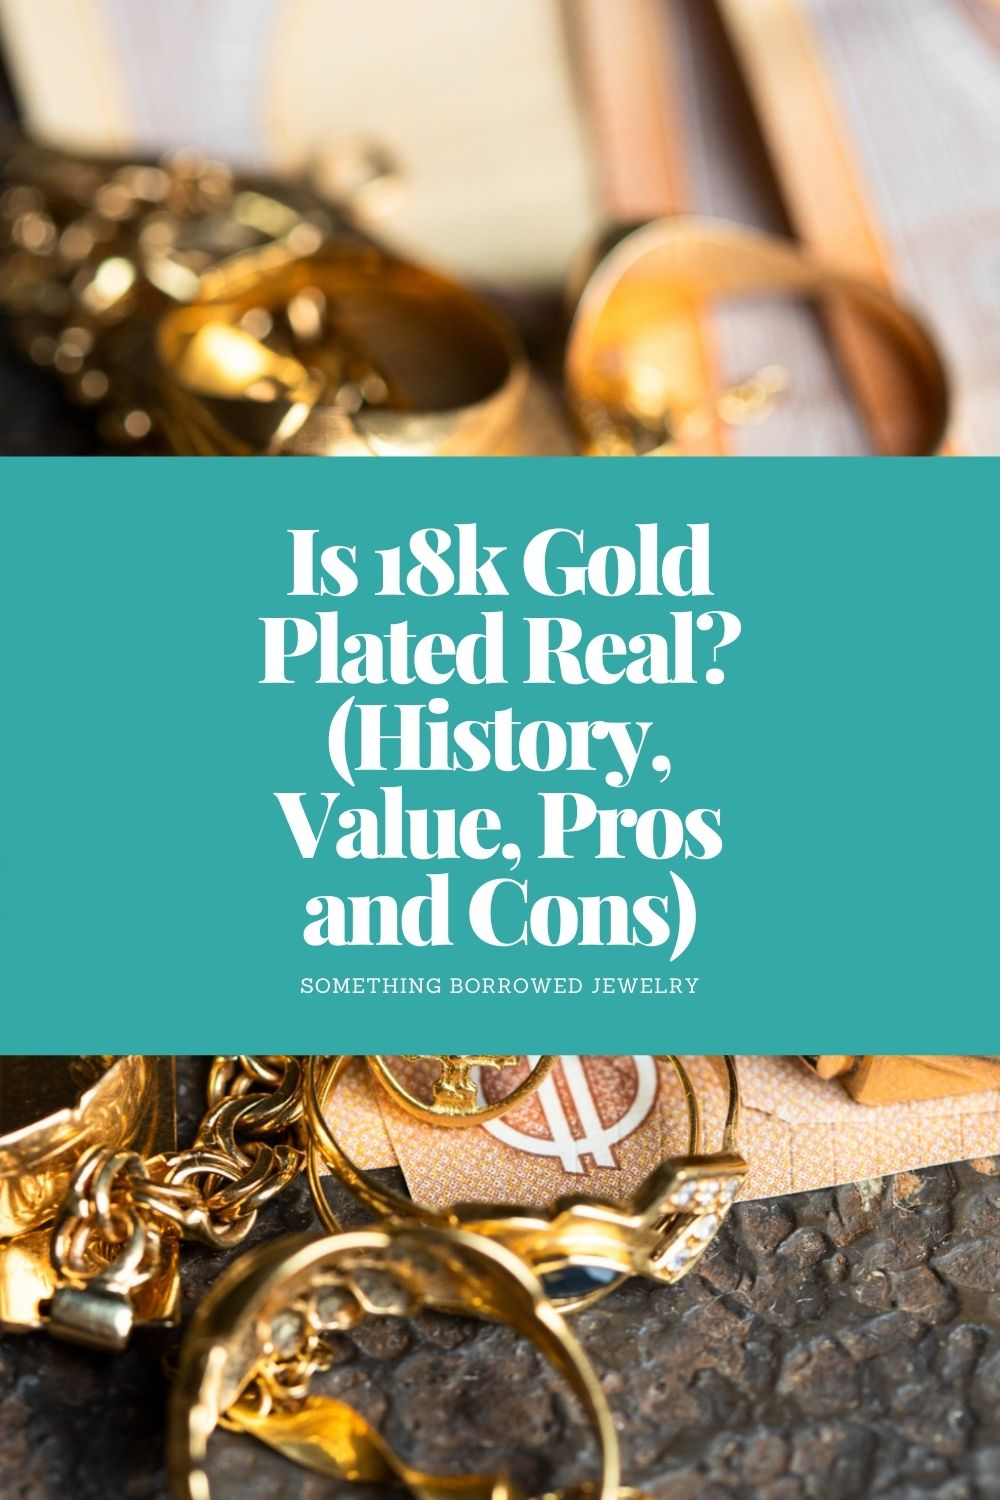 Is 18k Gold Plated Real (History, Value, Pros and Cons) pin